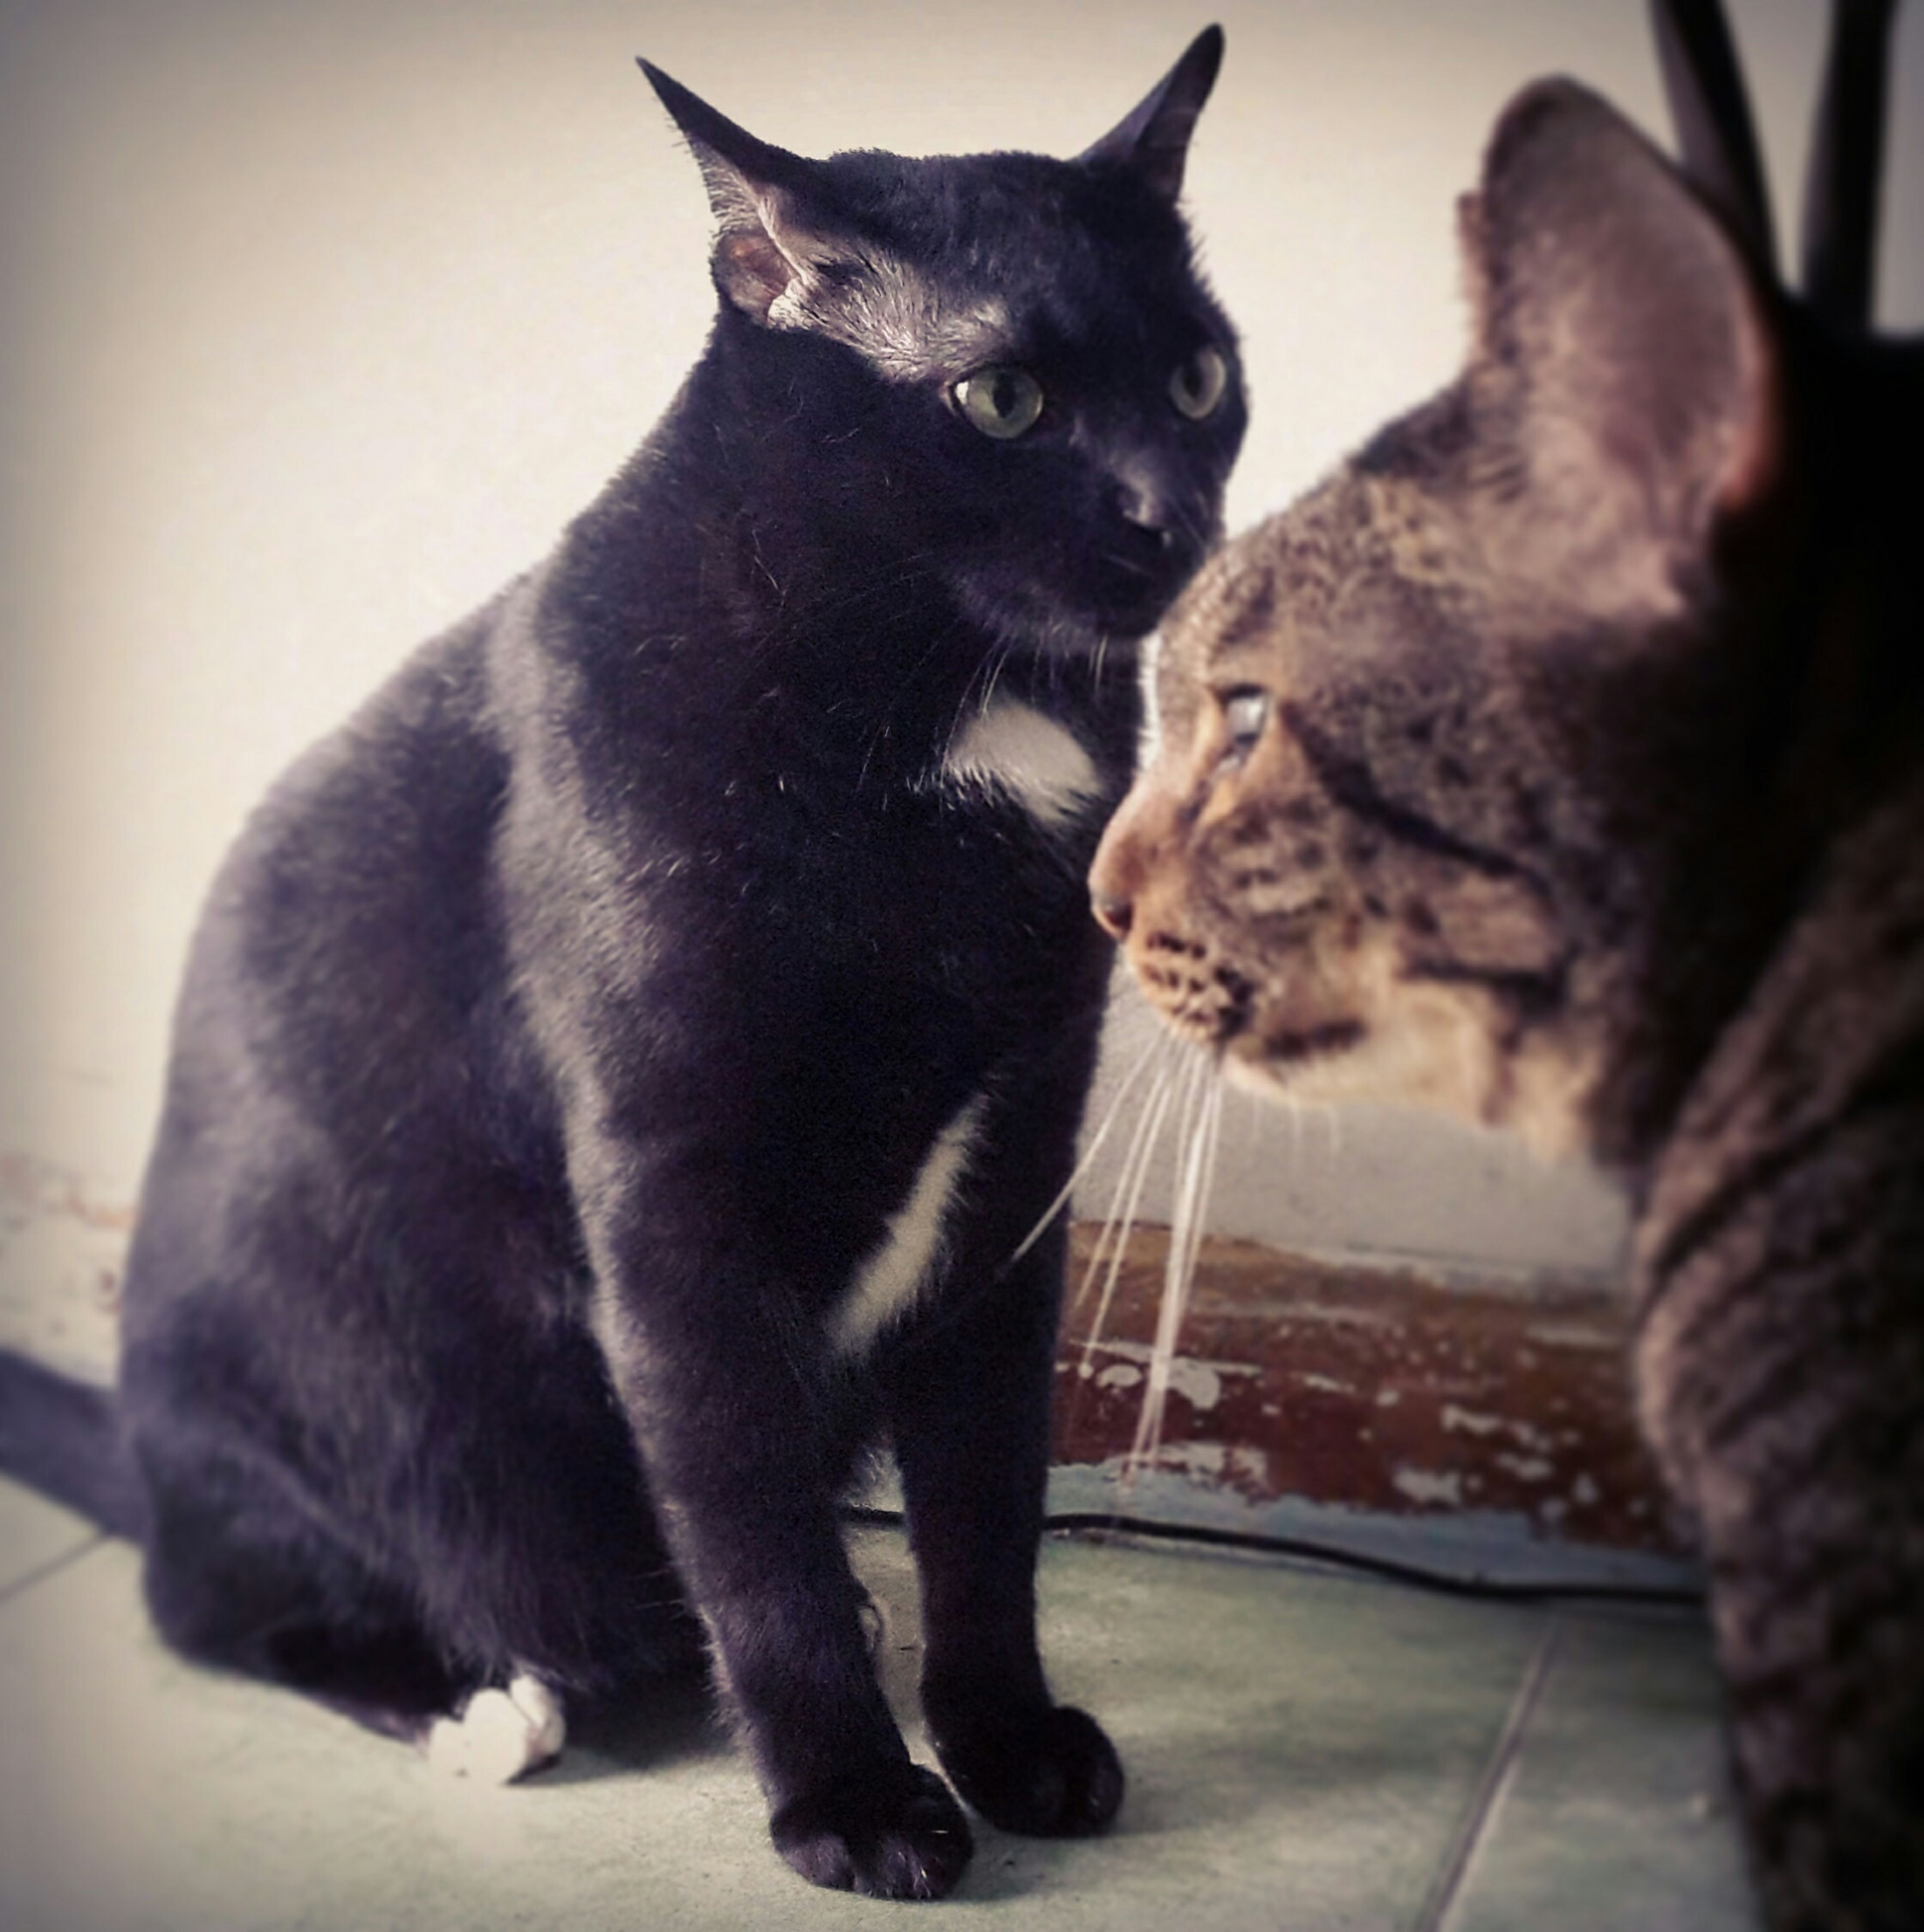 animal themes, pets, one animal, domestic cat, domestic animals, cat, mammal, indoors, feline, black color, whisker, sitting, home interior, relaxation, full length, two animals, close-up, no people, black, home